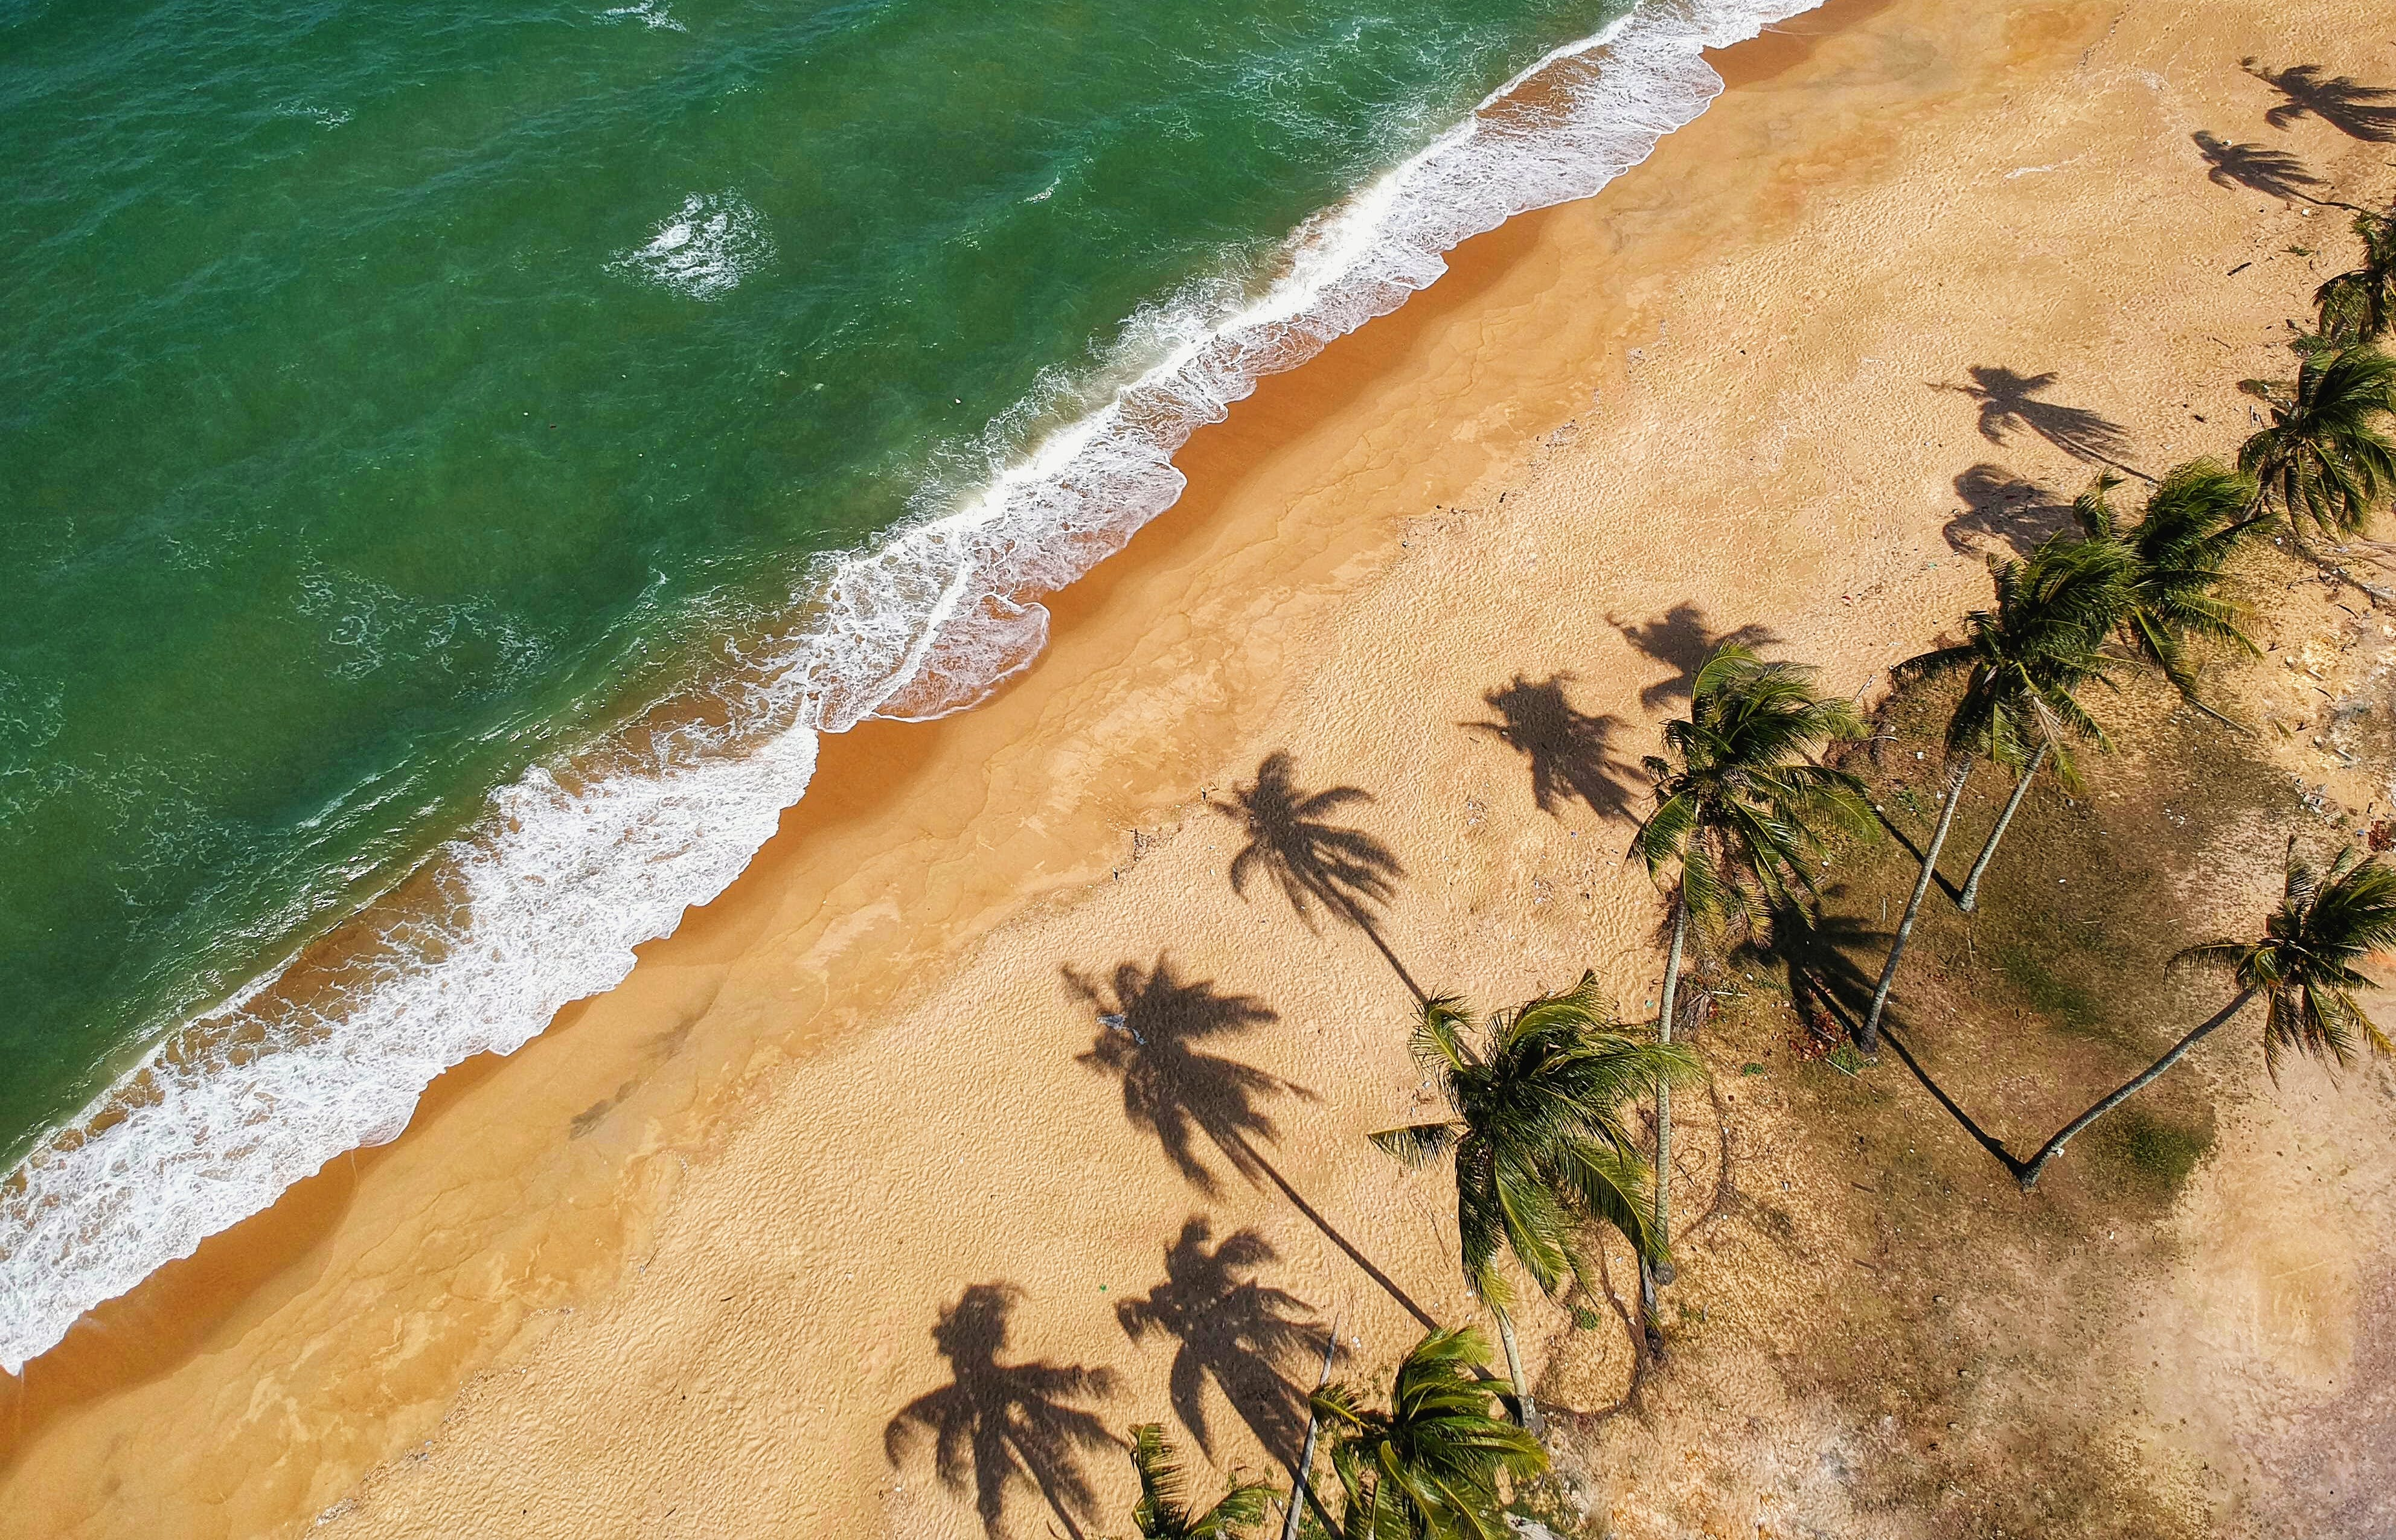 Free stock photo of beach, landscaping, coconut tree, aerial view